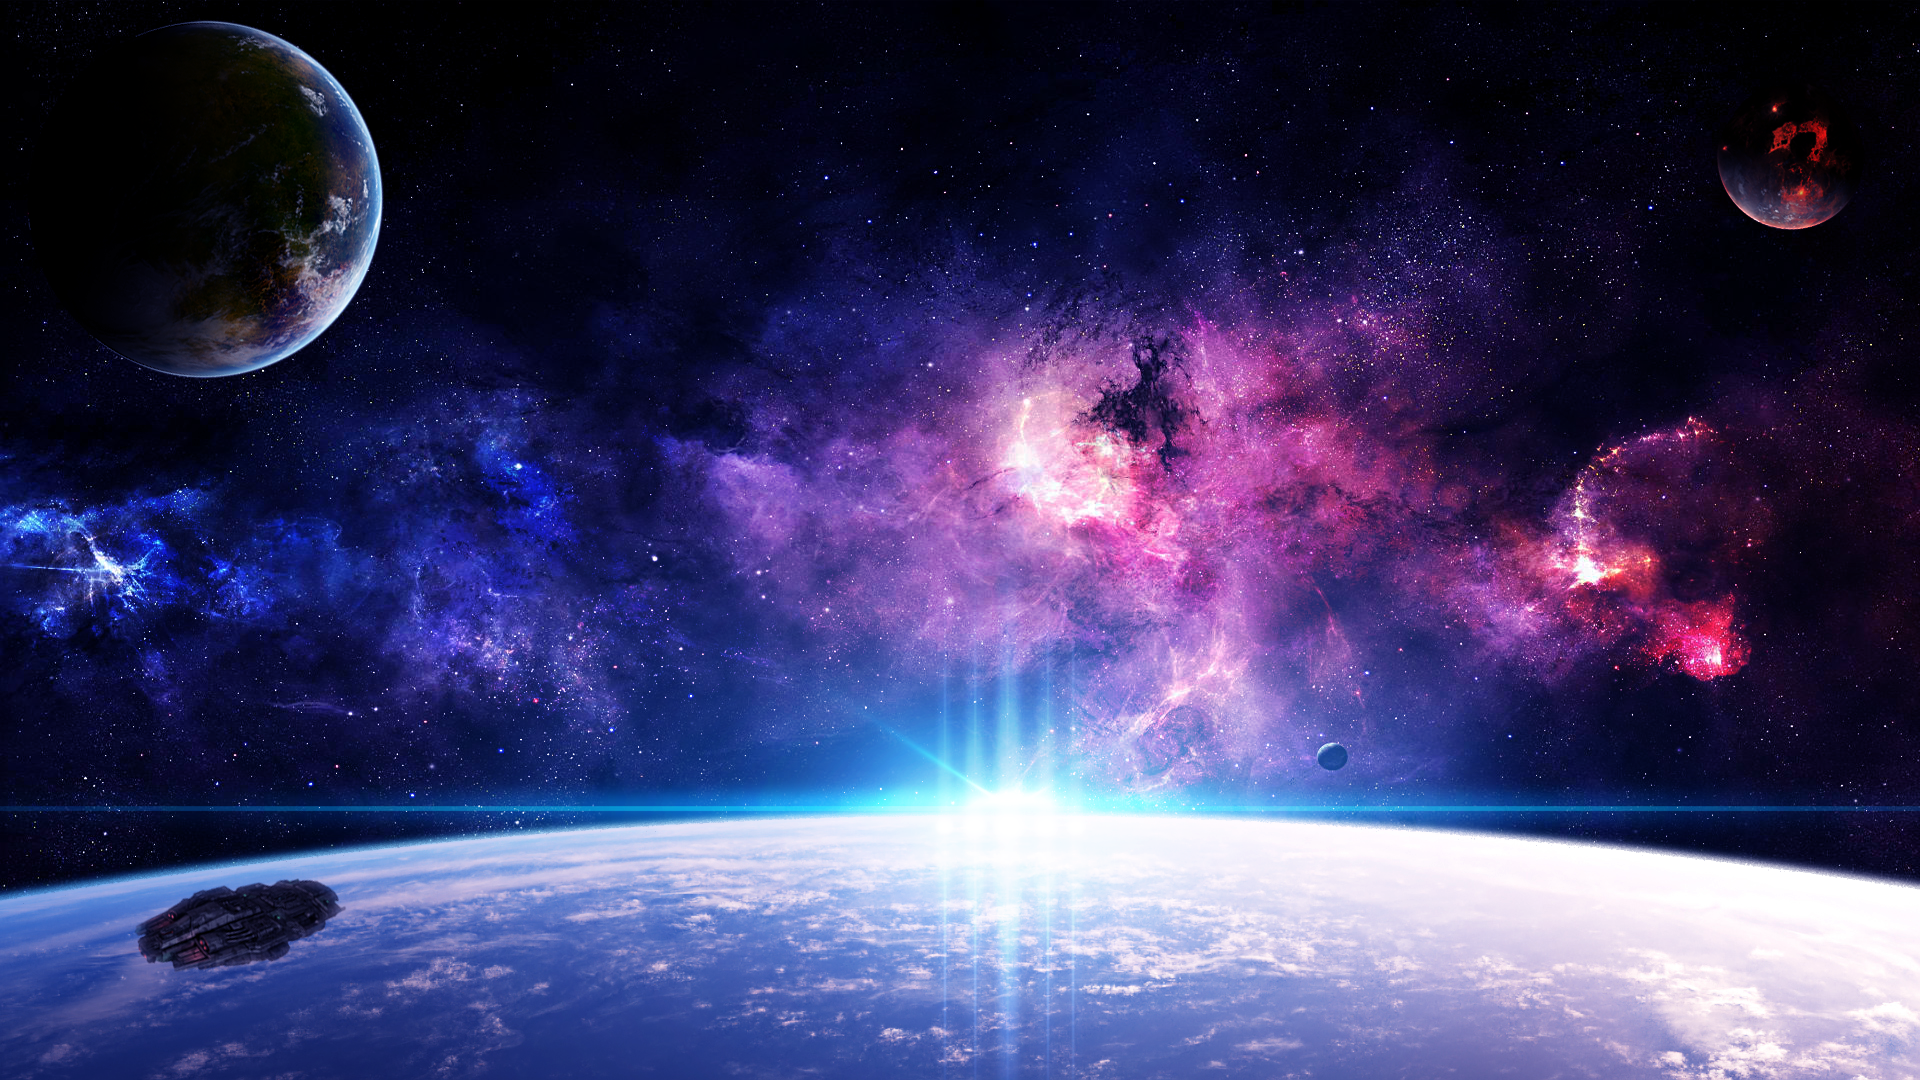 Space Hd Png Transparent Space Hd Png Images Pluspng